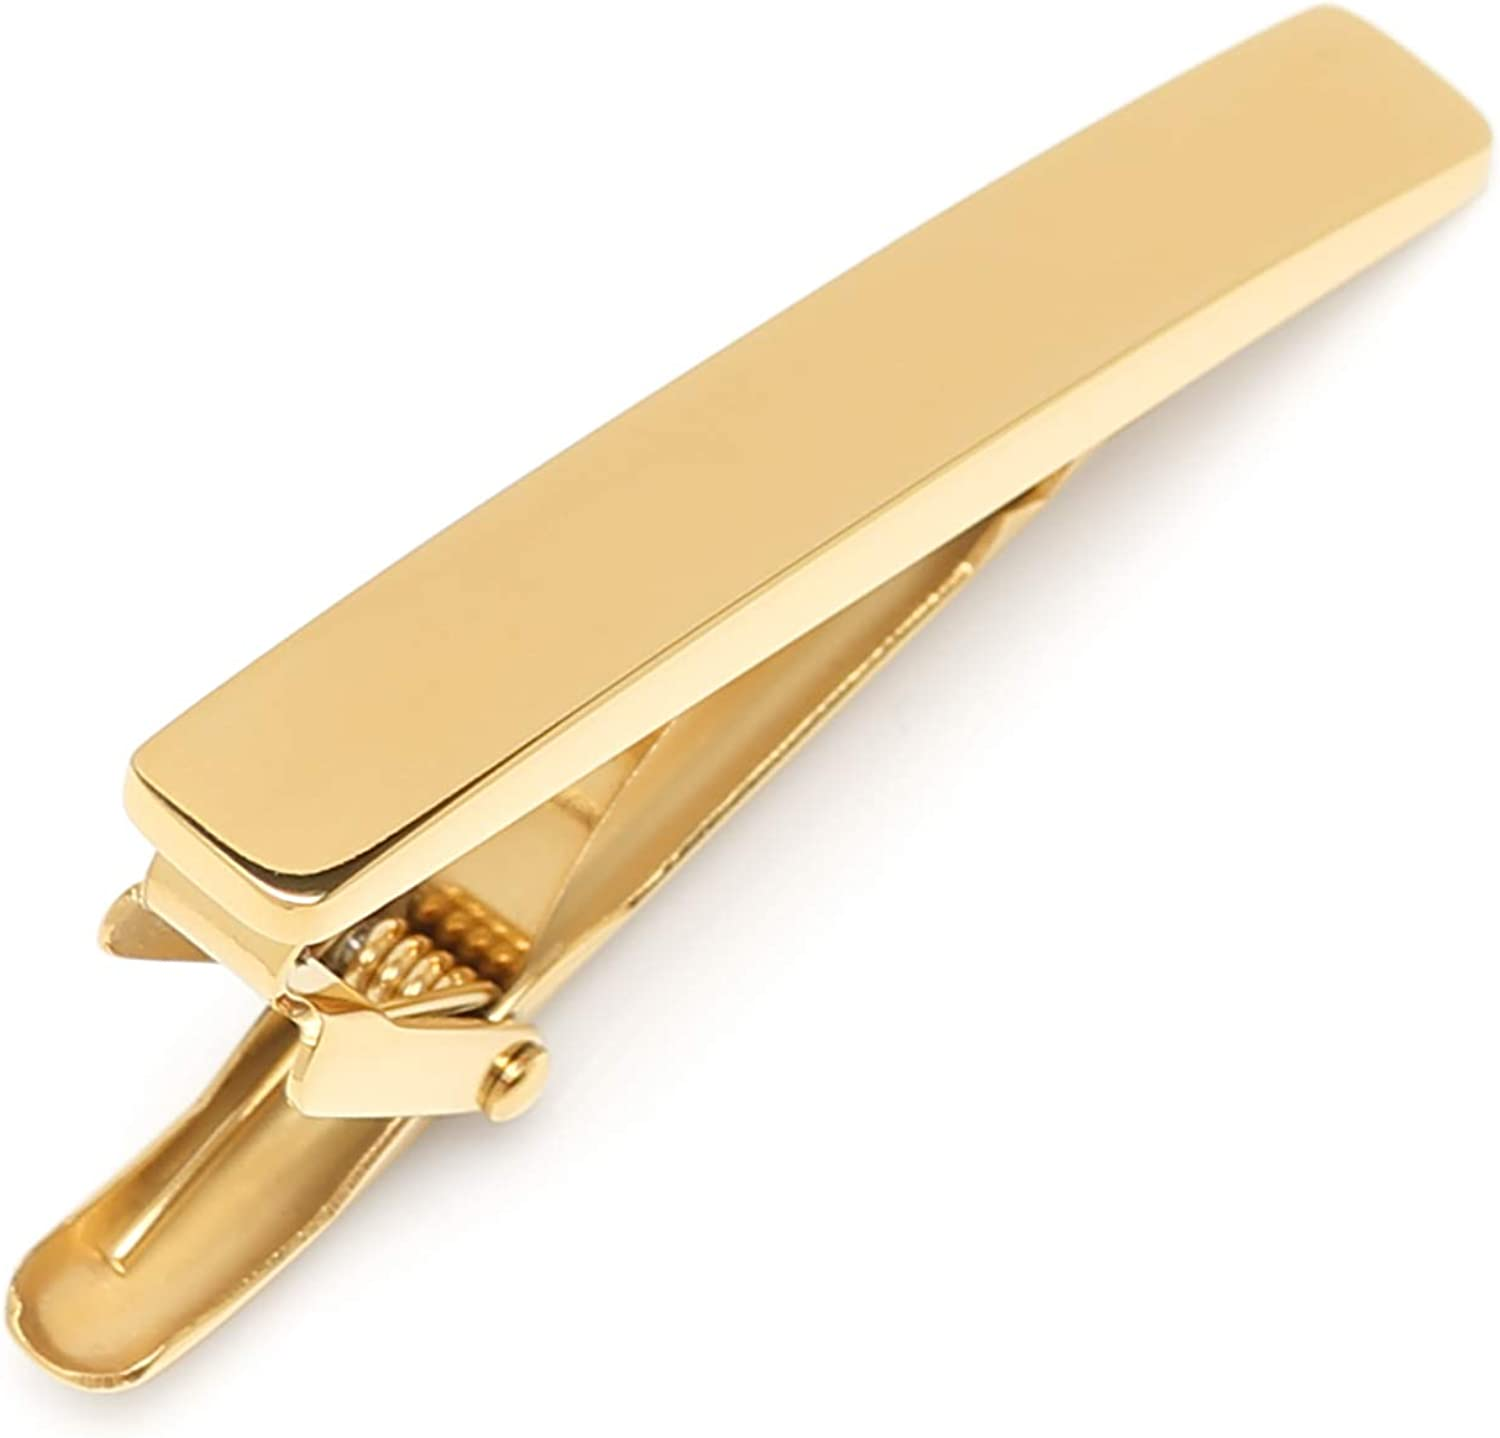 Gold Stainless Tie Clip